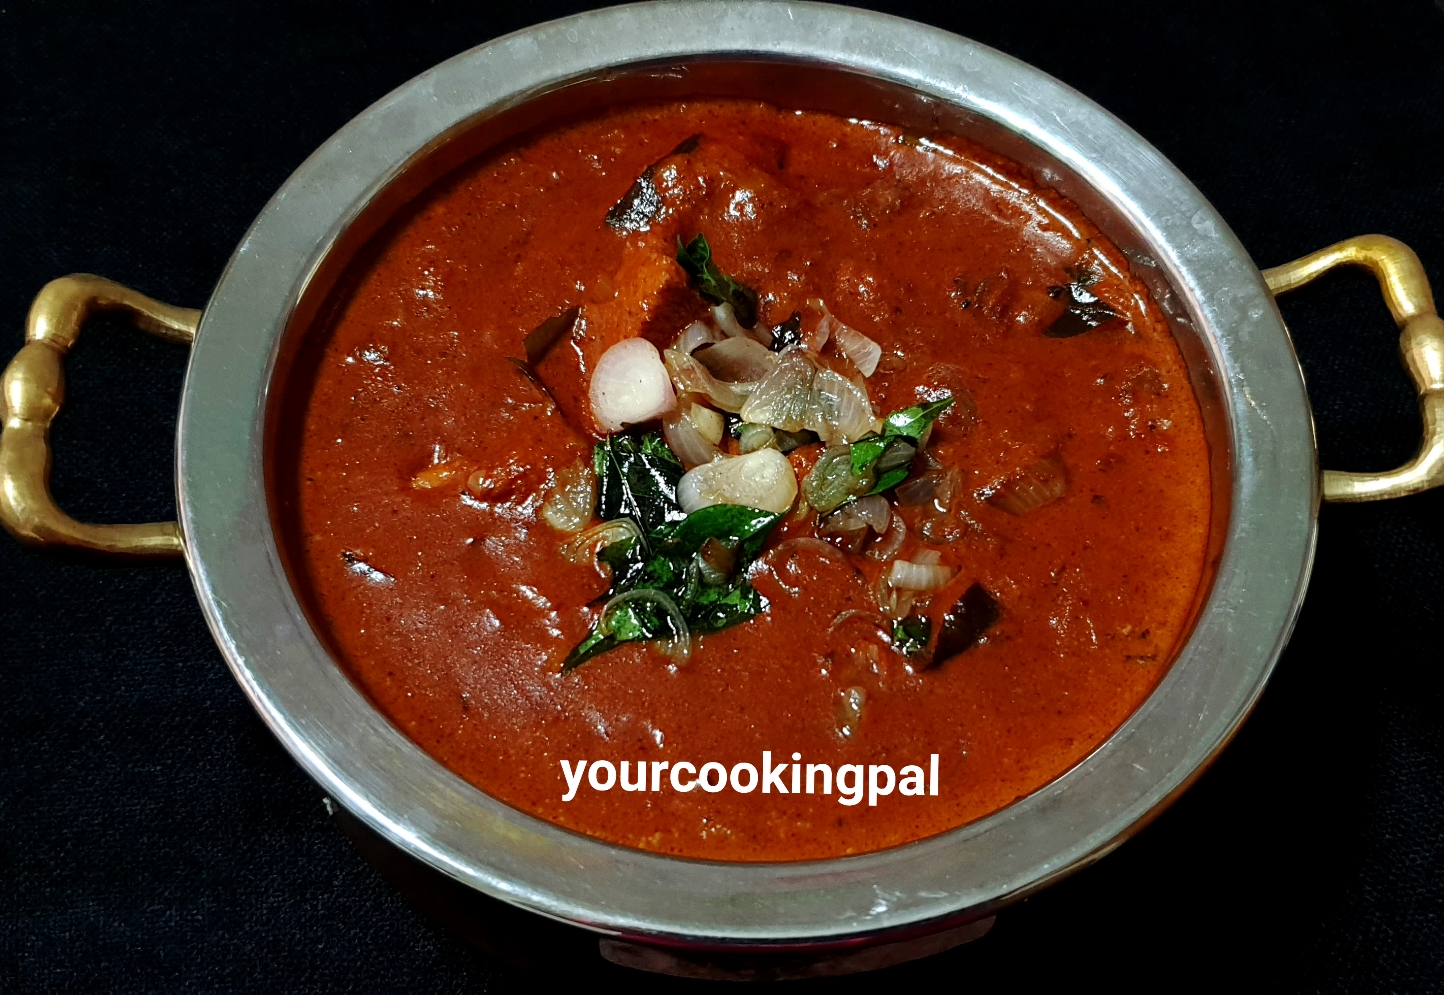 yourcookingpal_keralacurry